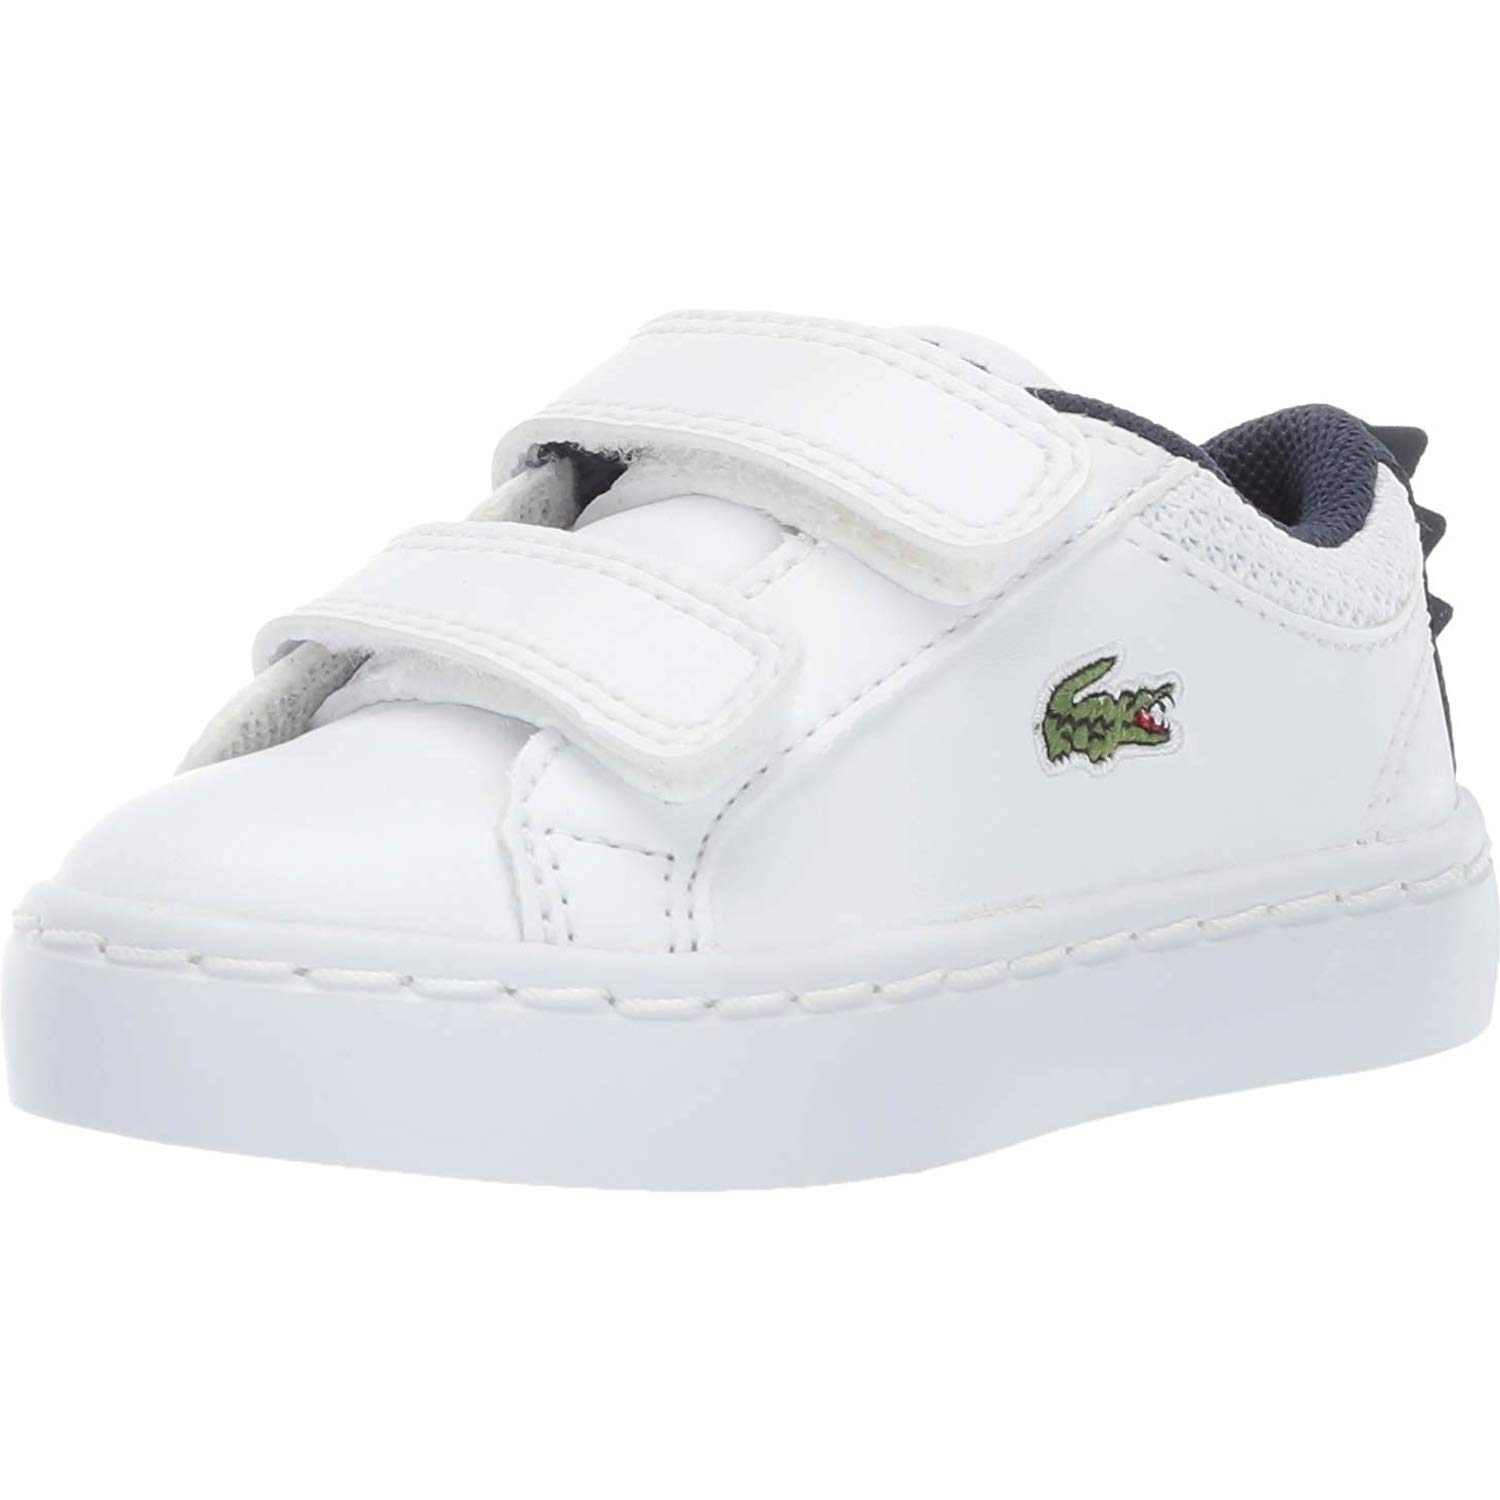 91b76141 Lacoste Straightset 119 1 White/Navy Synthetic Baby Trainers: Amazon ...